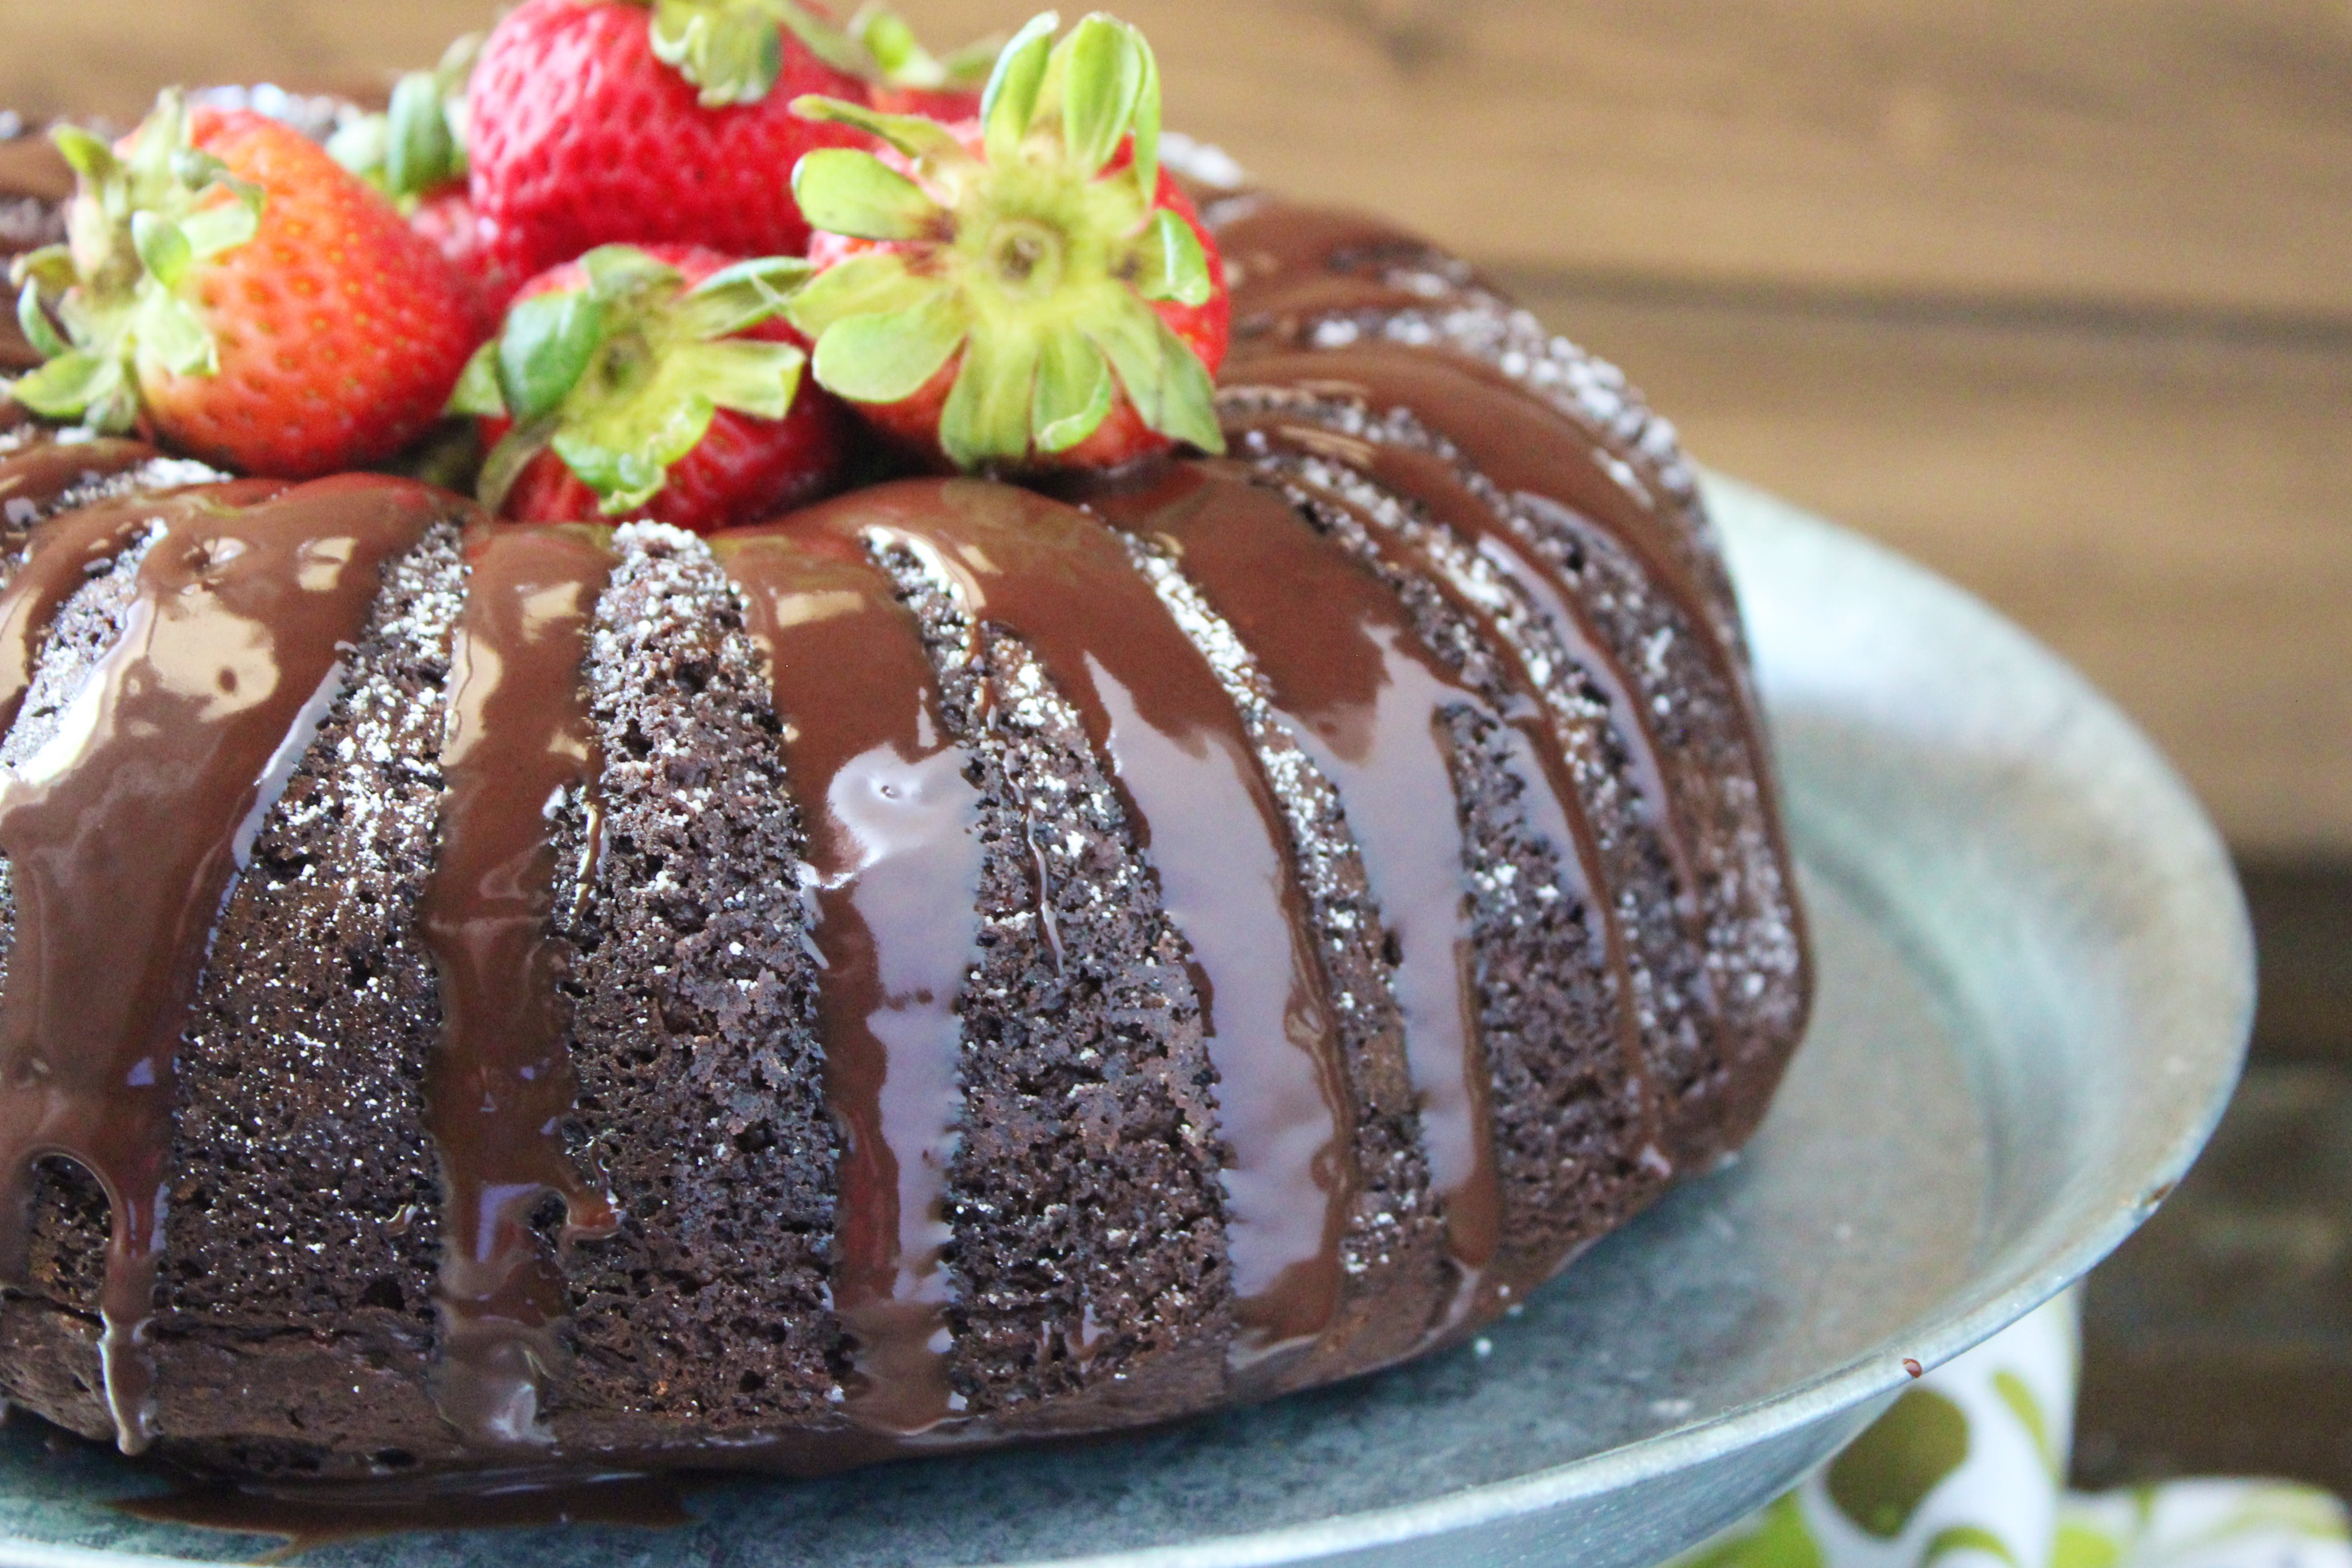 Chip & Joanna Gaines' Chocolate Chip Bundt Cake - addicted to recipes